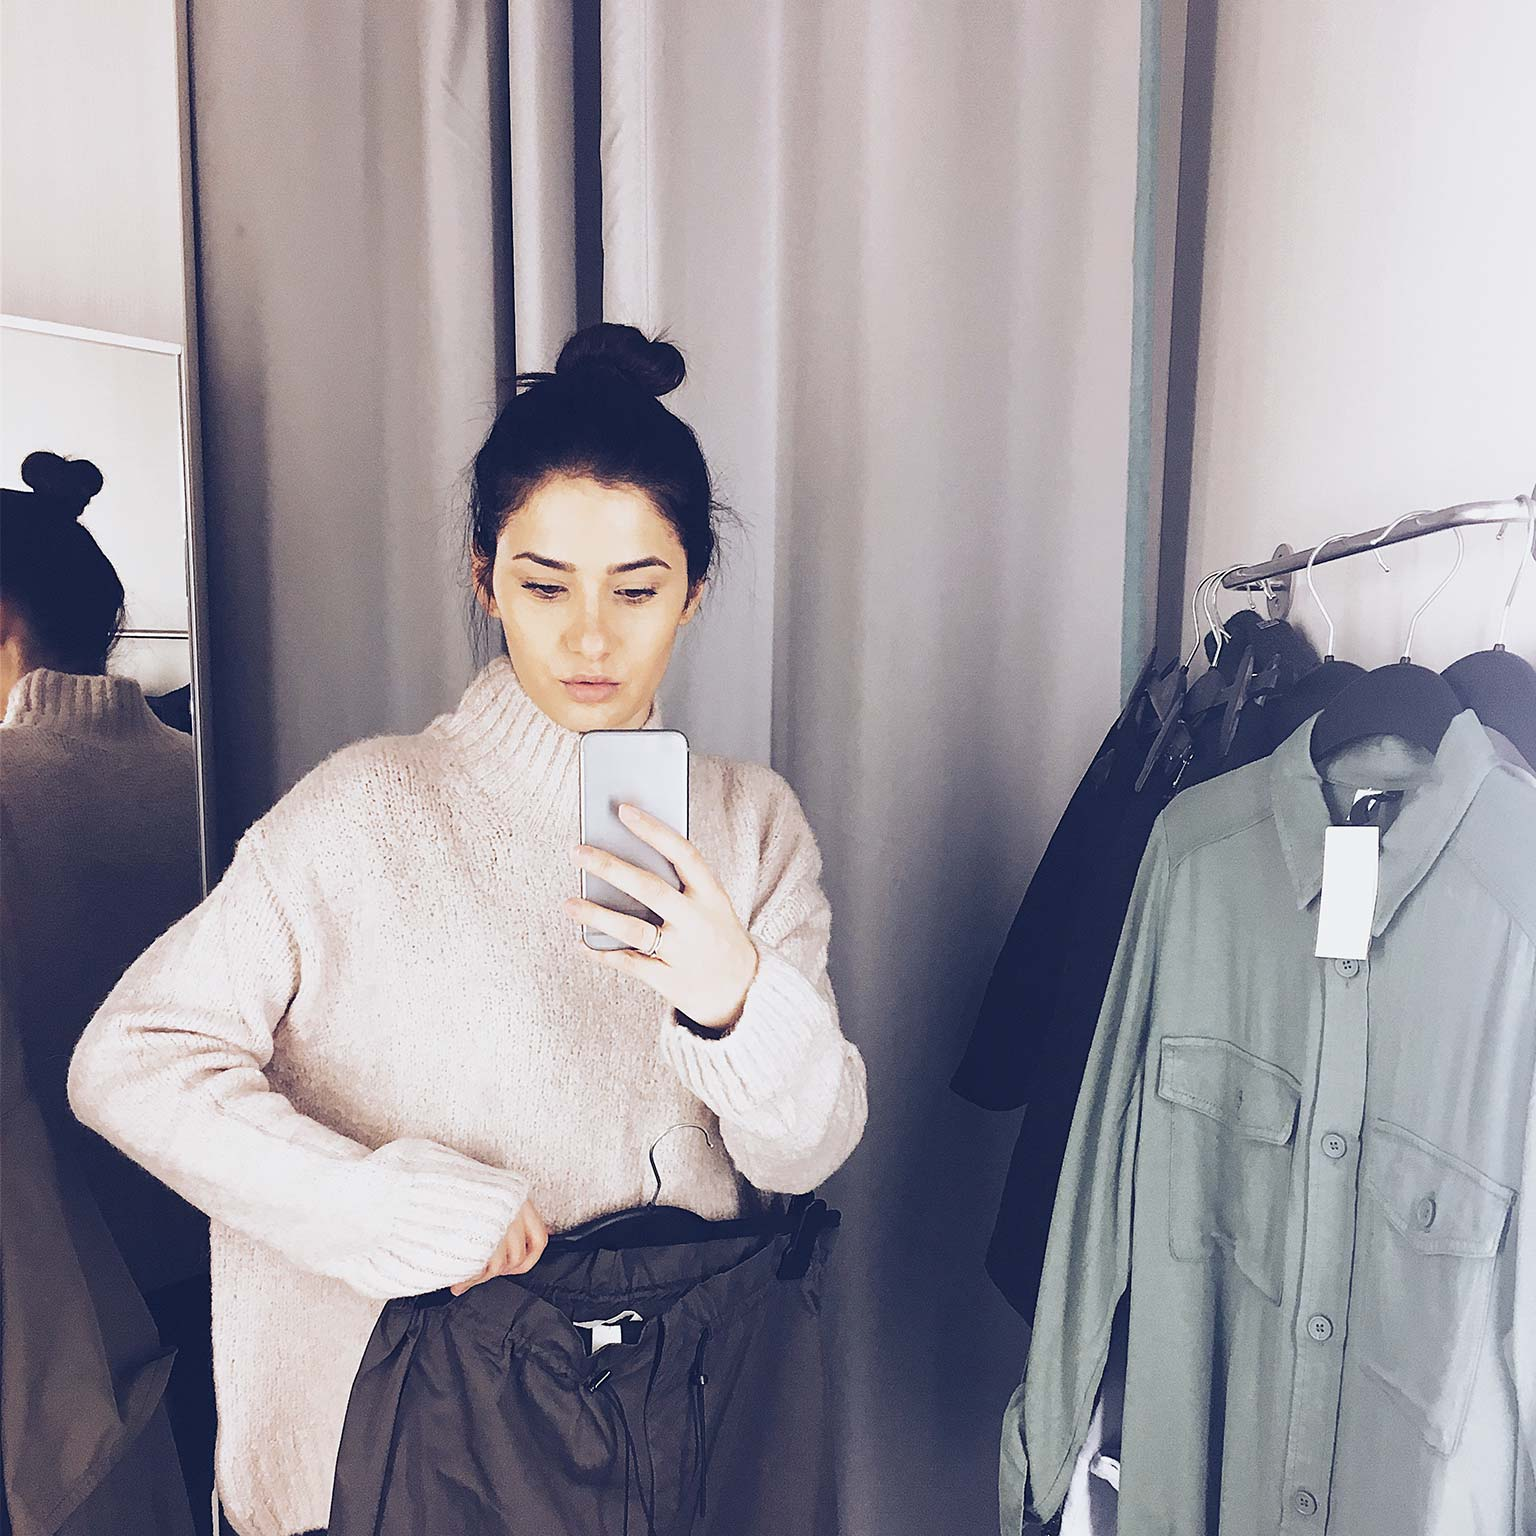 Fashion Nova Net Worth 2020.The State Of Fashion 2020 Navigating Uncertainty In The